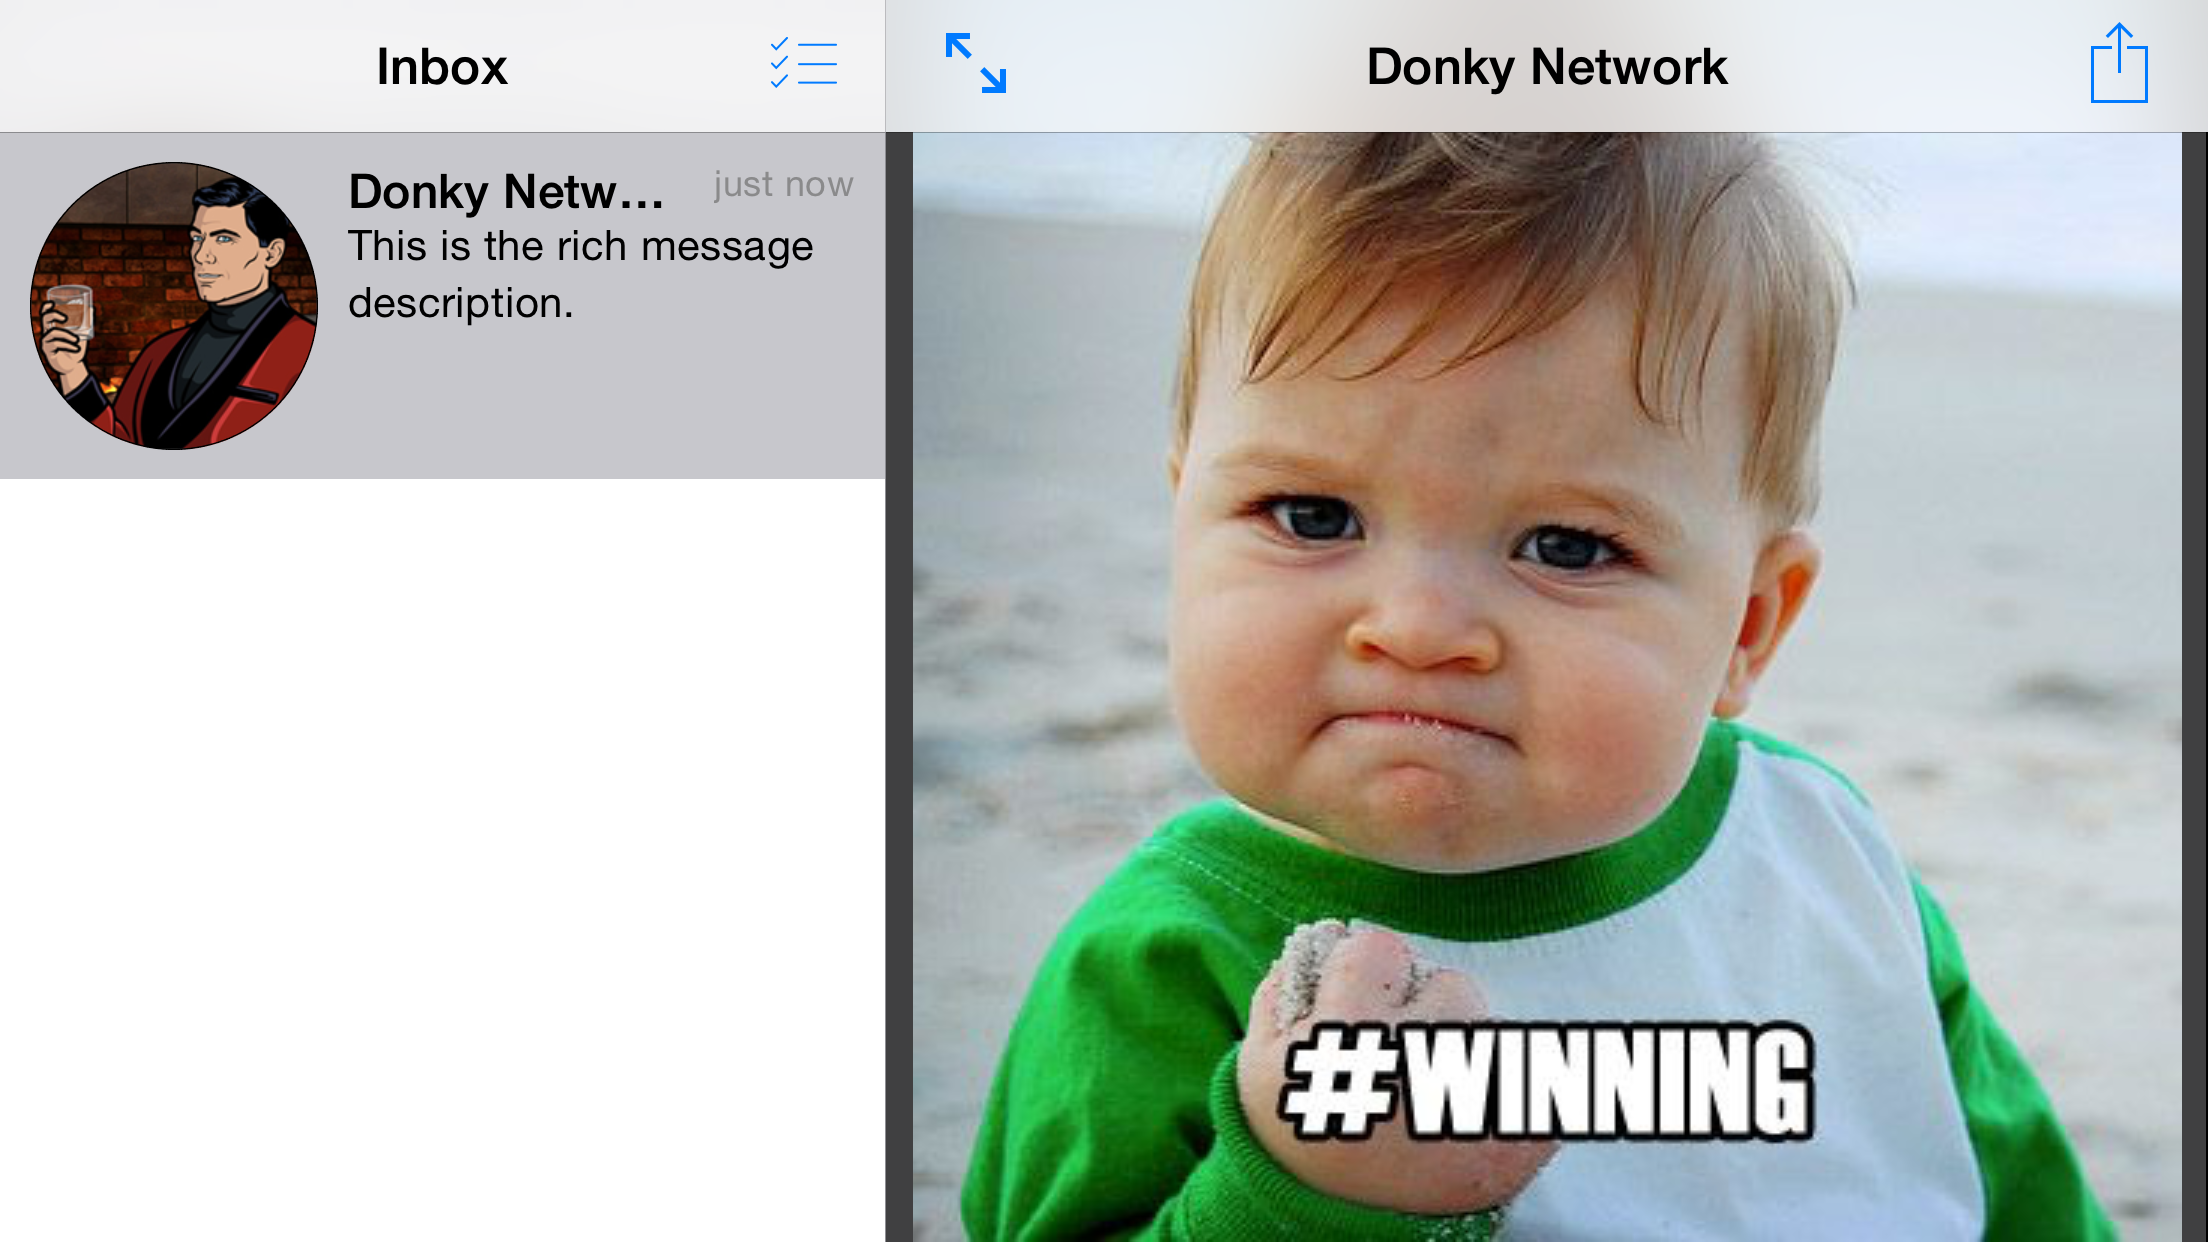 Example of a rich message being displayed on an iPhone 6+, iOS 8.4 in Landscape.